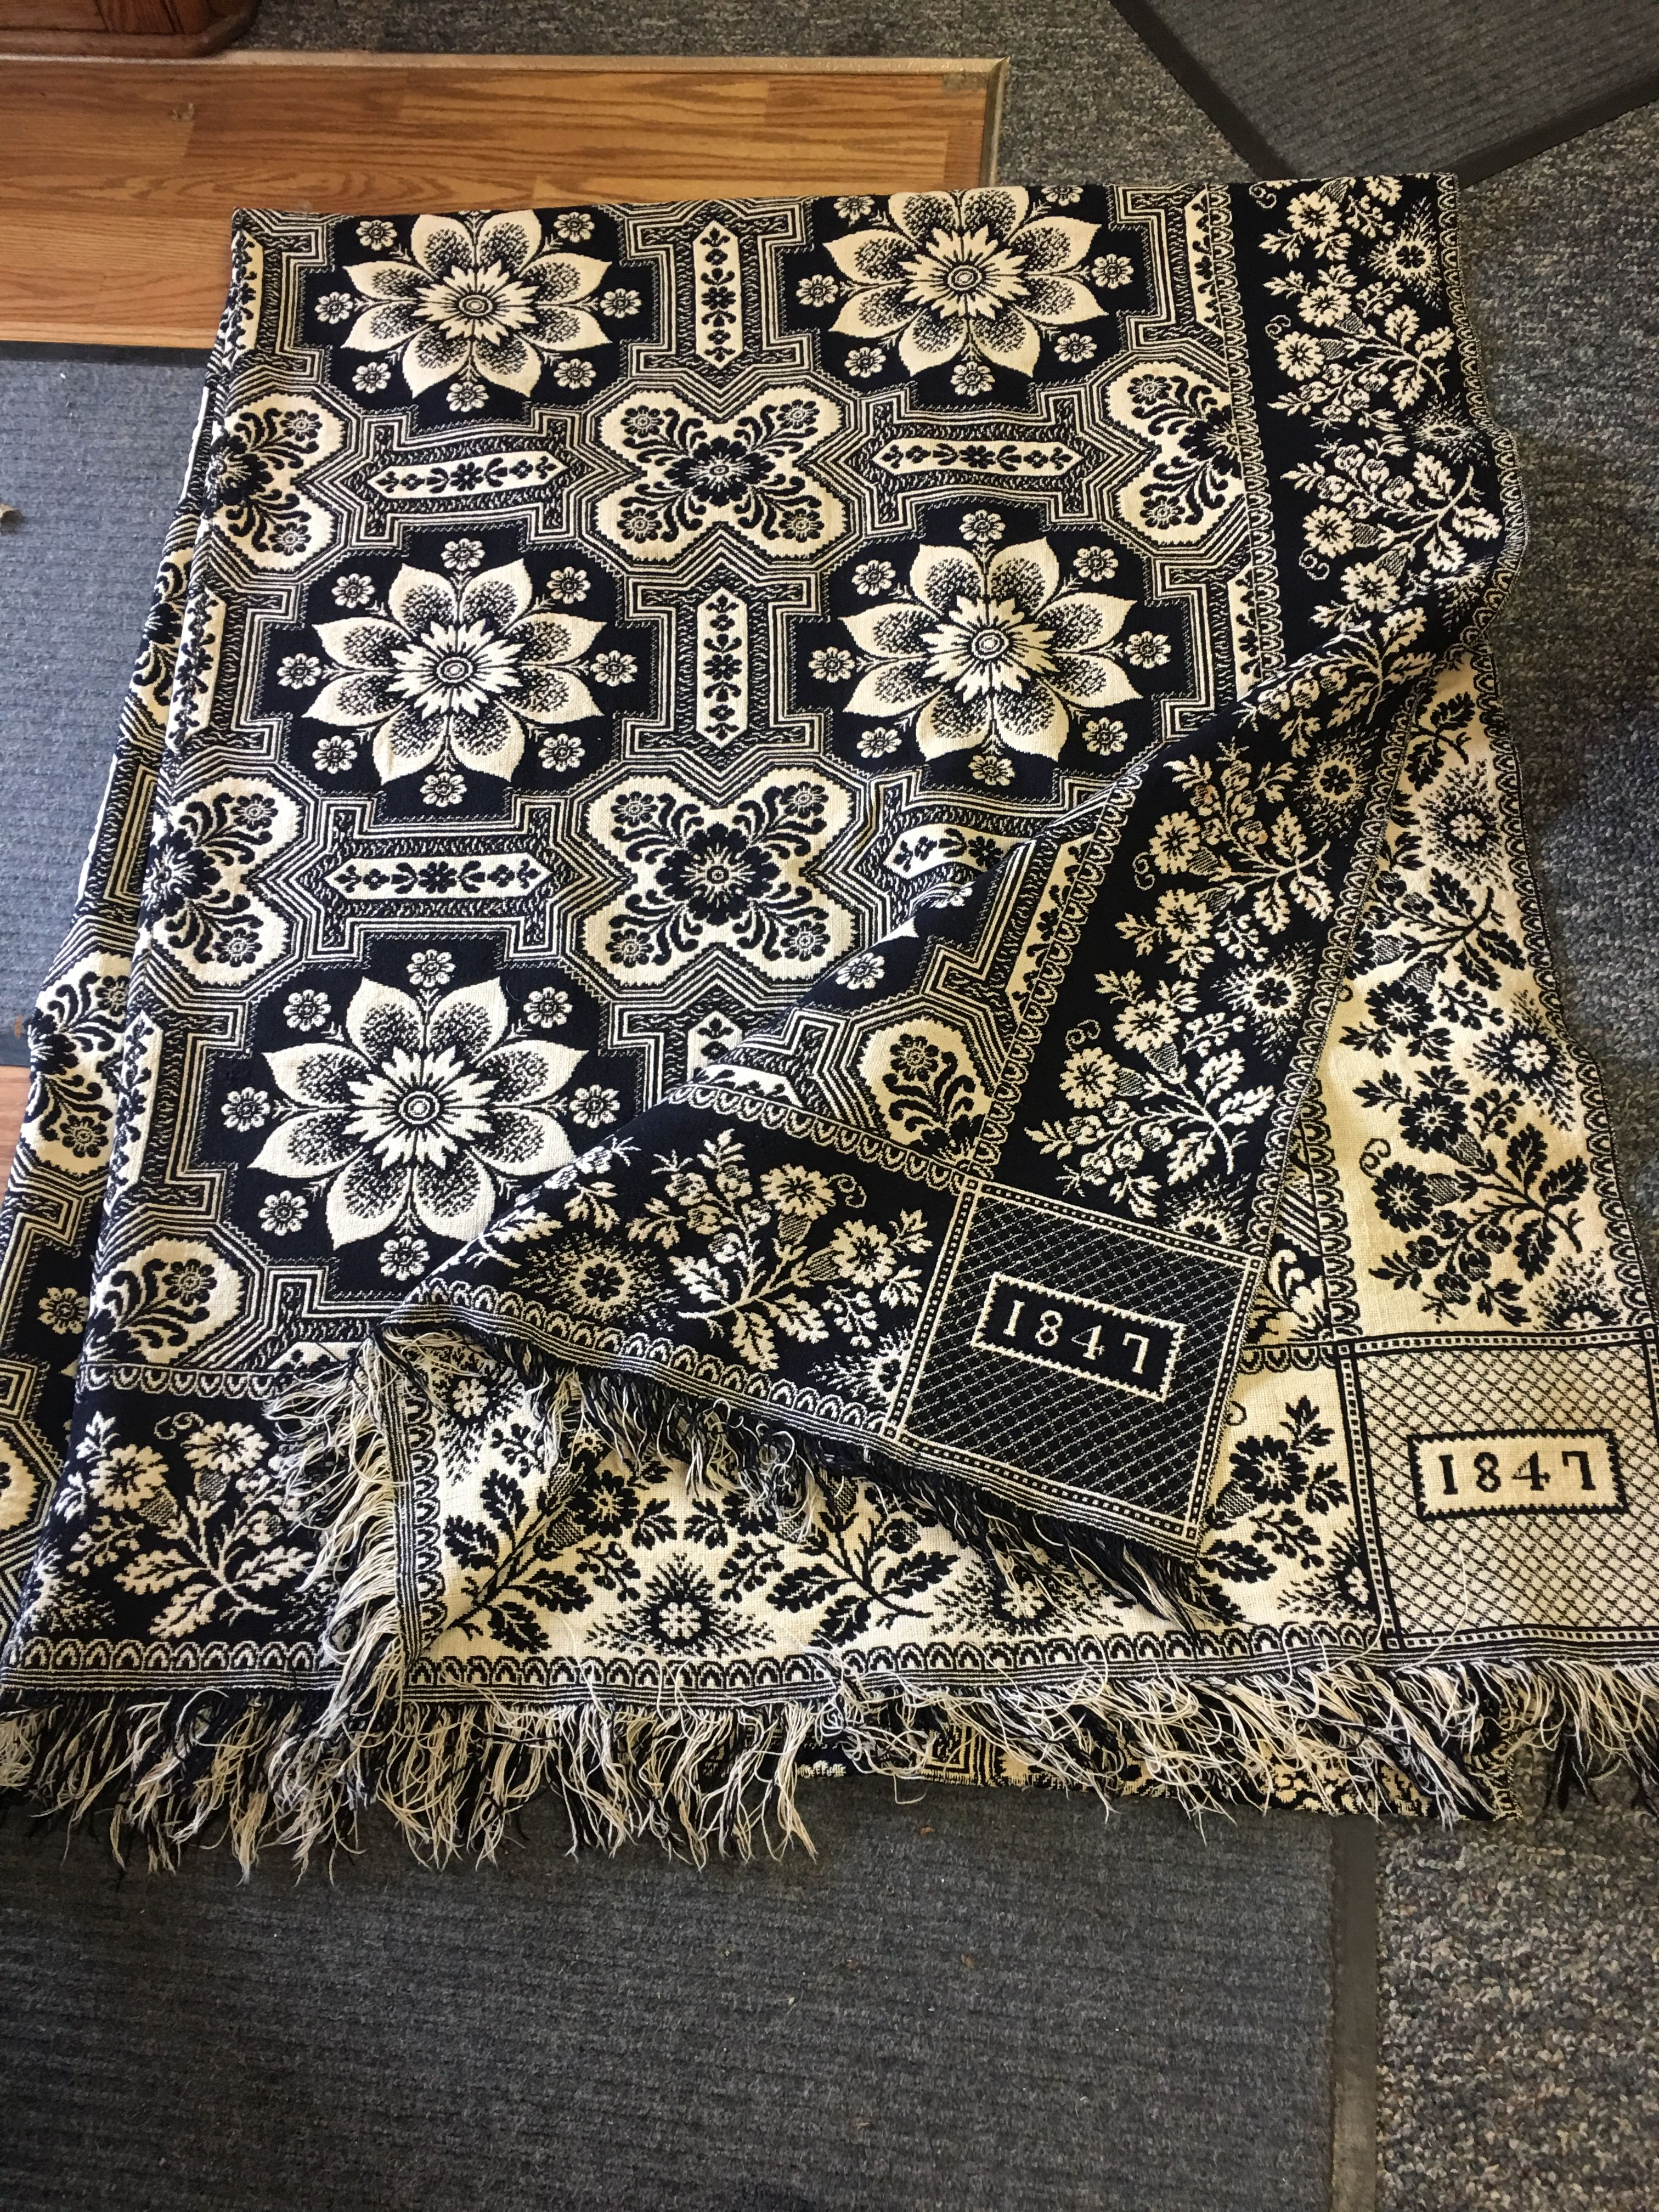 Outstanding Indiana Coverlet Dated 1847 Antique Fabrics Coverlets Quilted Coverlet